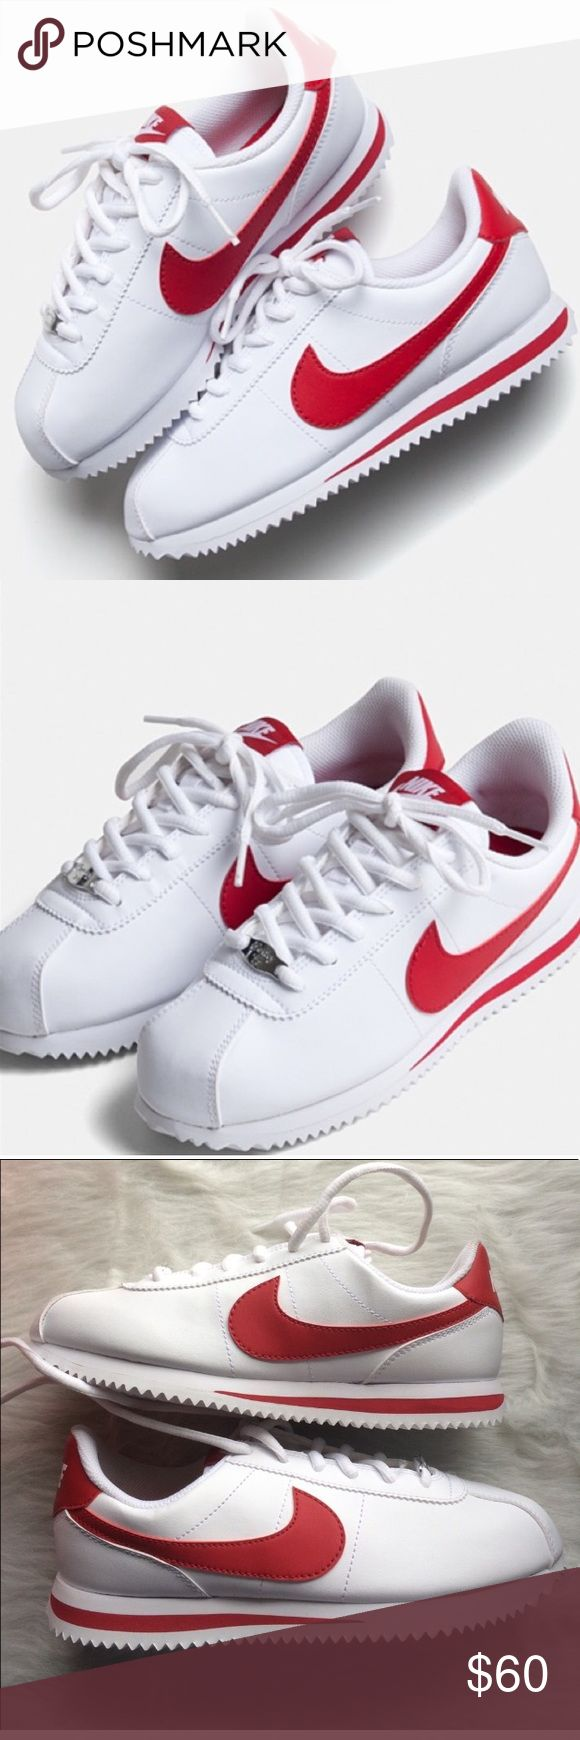 NIKE CORTEZ WHITE RED SHOES SIZE 7 WOMENS Brand new without box. Size 5.5 youth which is a women's size 7 I have added a sizing chart for your Convenience. Nike Shoes Sneakers